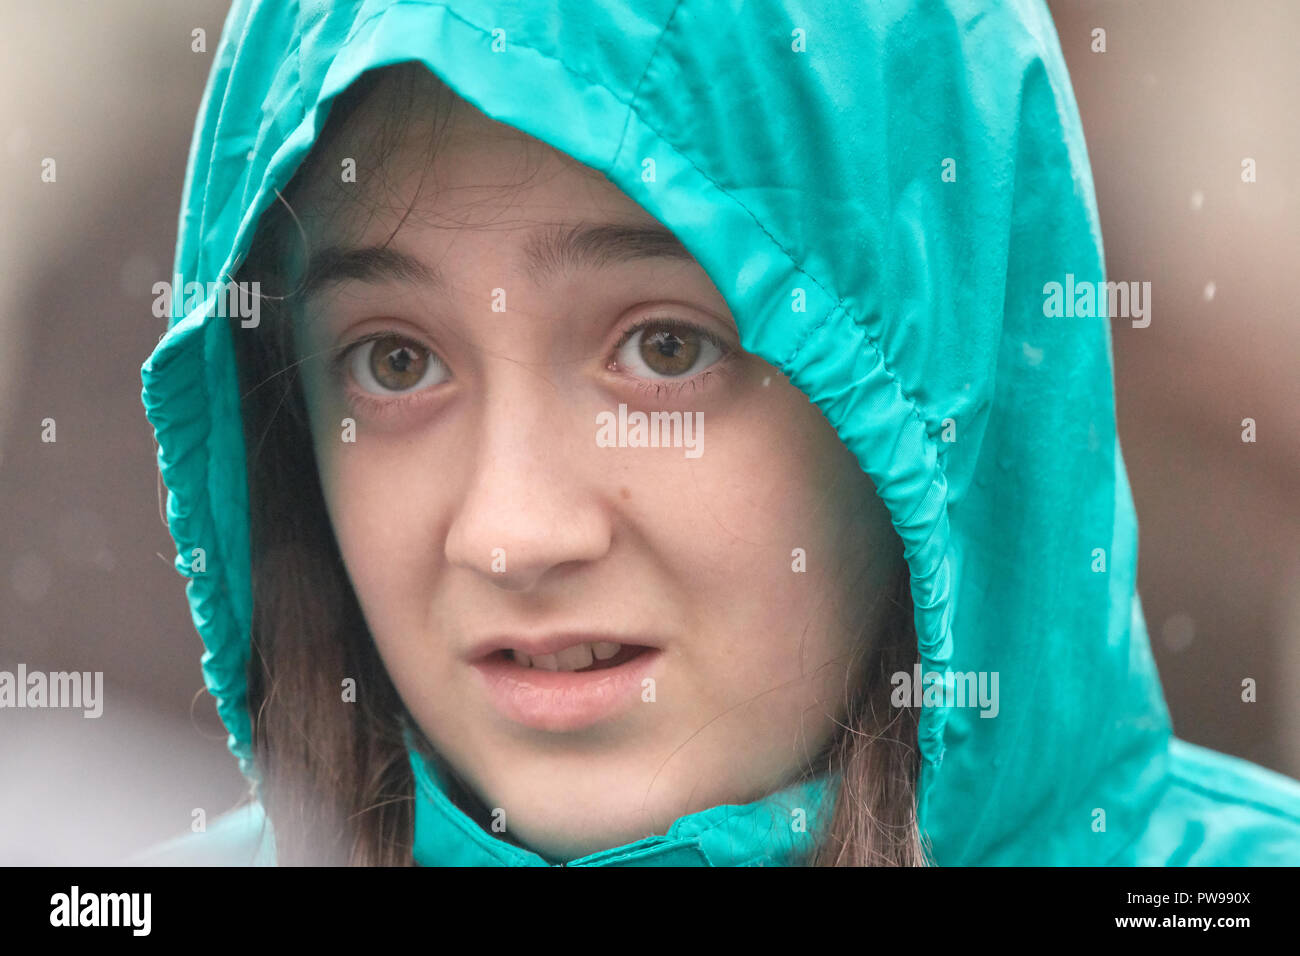 Look of disappointment on the face of a losing contestant on a very rainy day at Southwick, East Midlands, England, 14th October 2018, for the 2018 junior world conker championships. Credit: Michael Foley/Alamy Live News - Stock Image